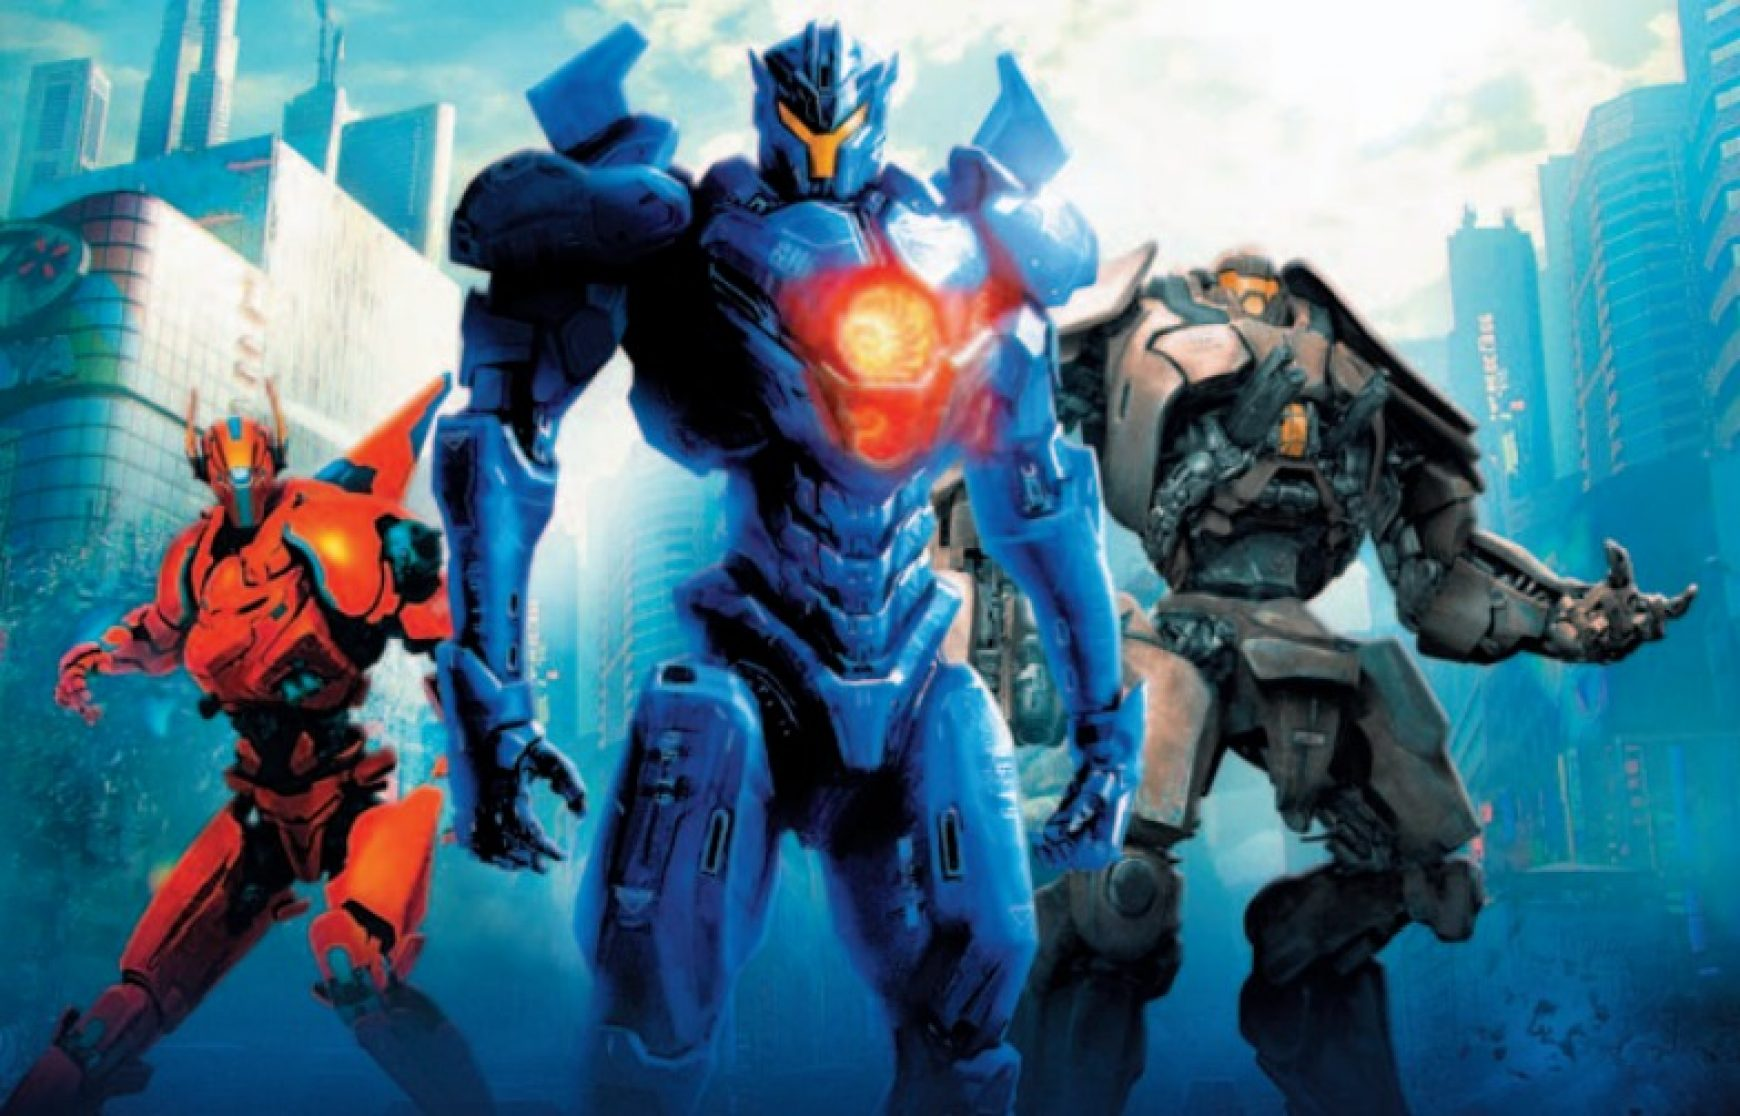 storm 6 drone with Pacific Rim Uprising Toys  Ing Diamond Select Toys 259486 on Pacific Rim Uprising Toys  ing Diamond Select Toys 259486 likewise Terran Marine From Starcraft Runs The Gauntlet 1606501 additionally 338524264 furthermore 551972498066398839 further Watch.